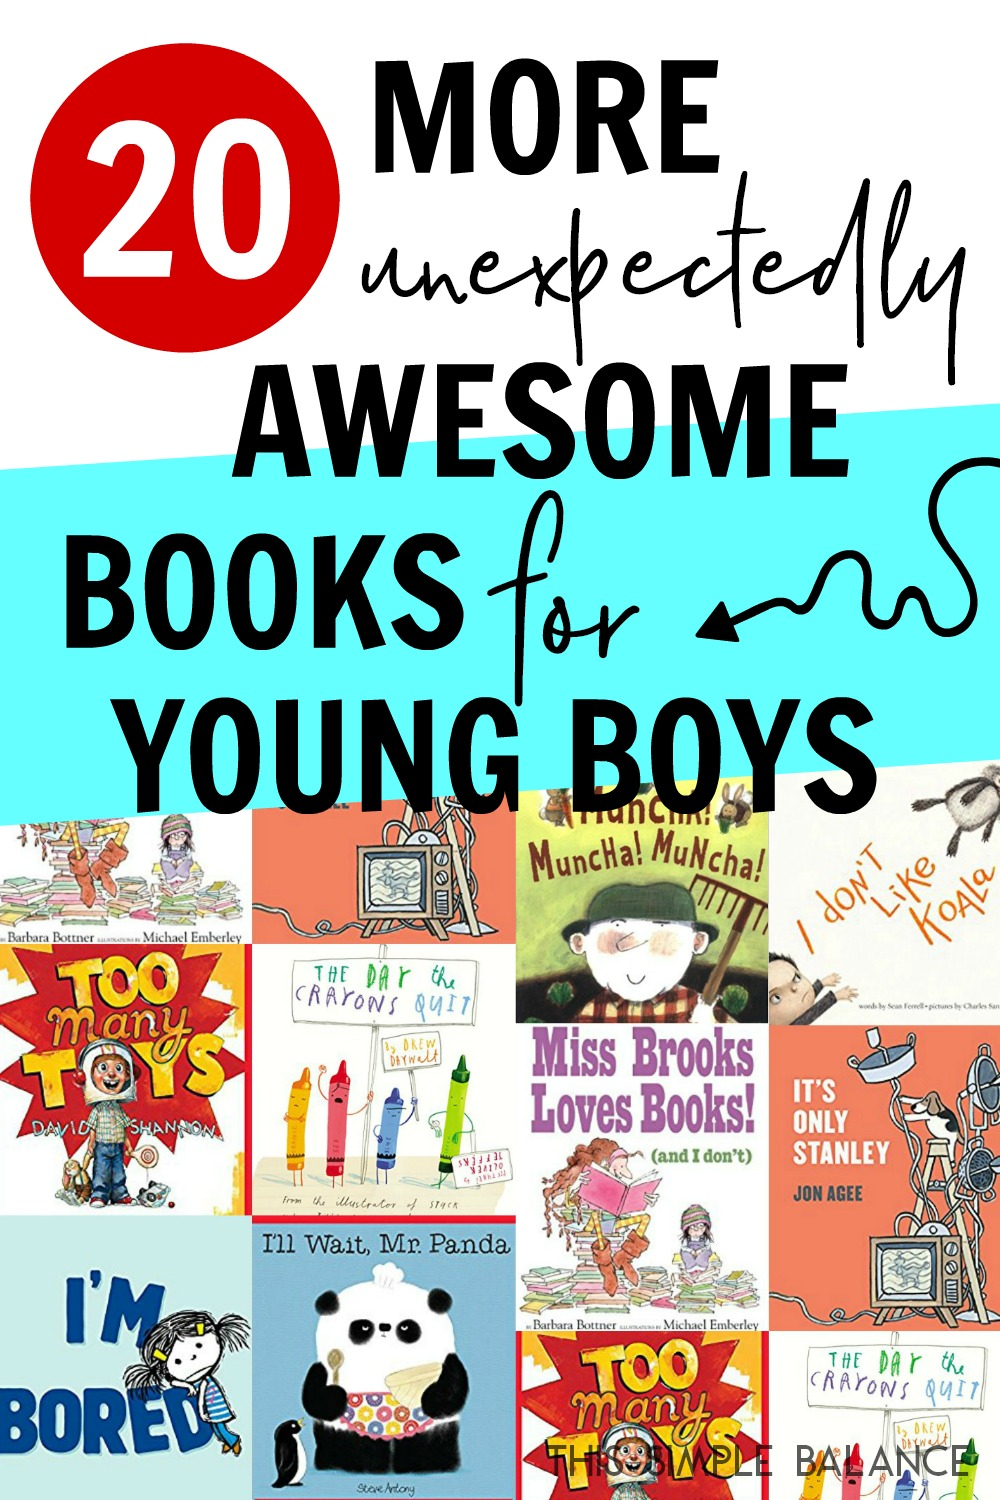 20 More Great Books for Young Boys - the greatest hits with my boys from our library finds (ages 4-6, 6-8)